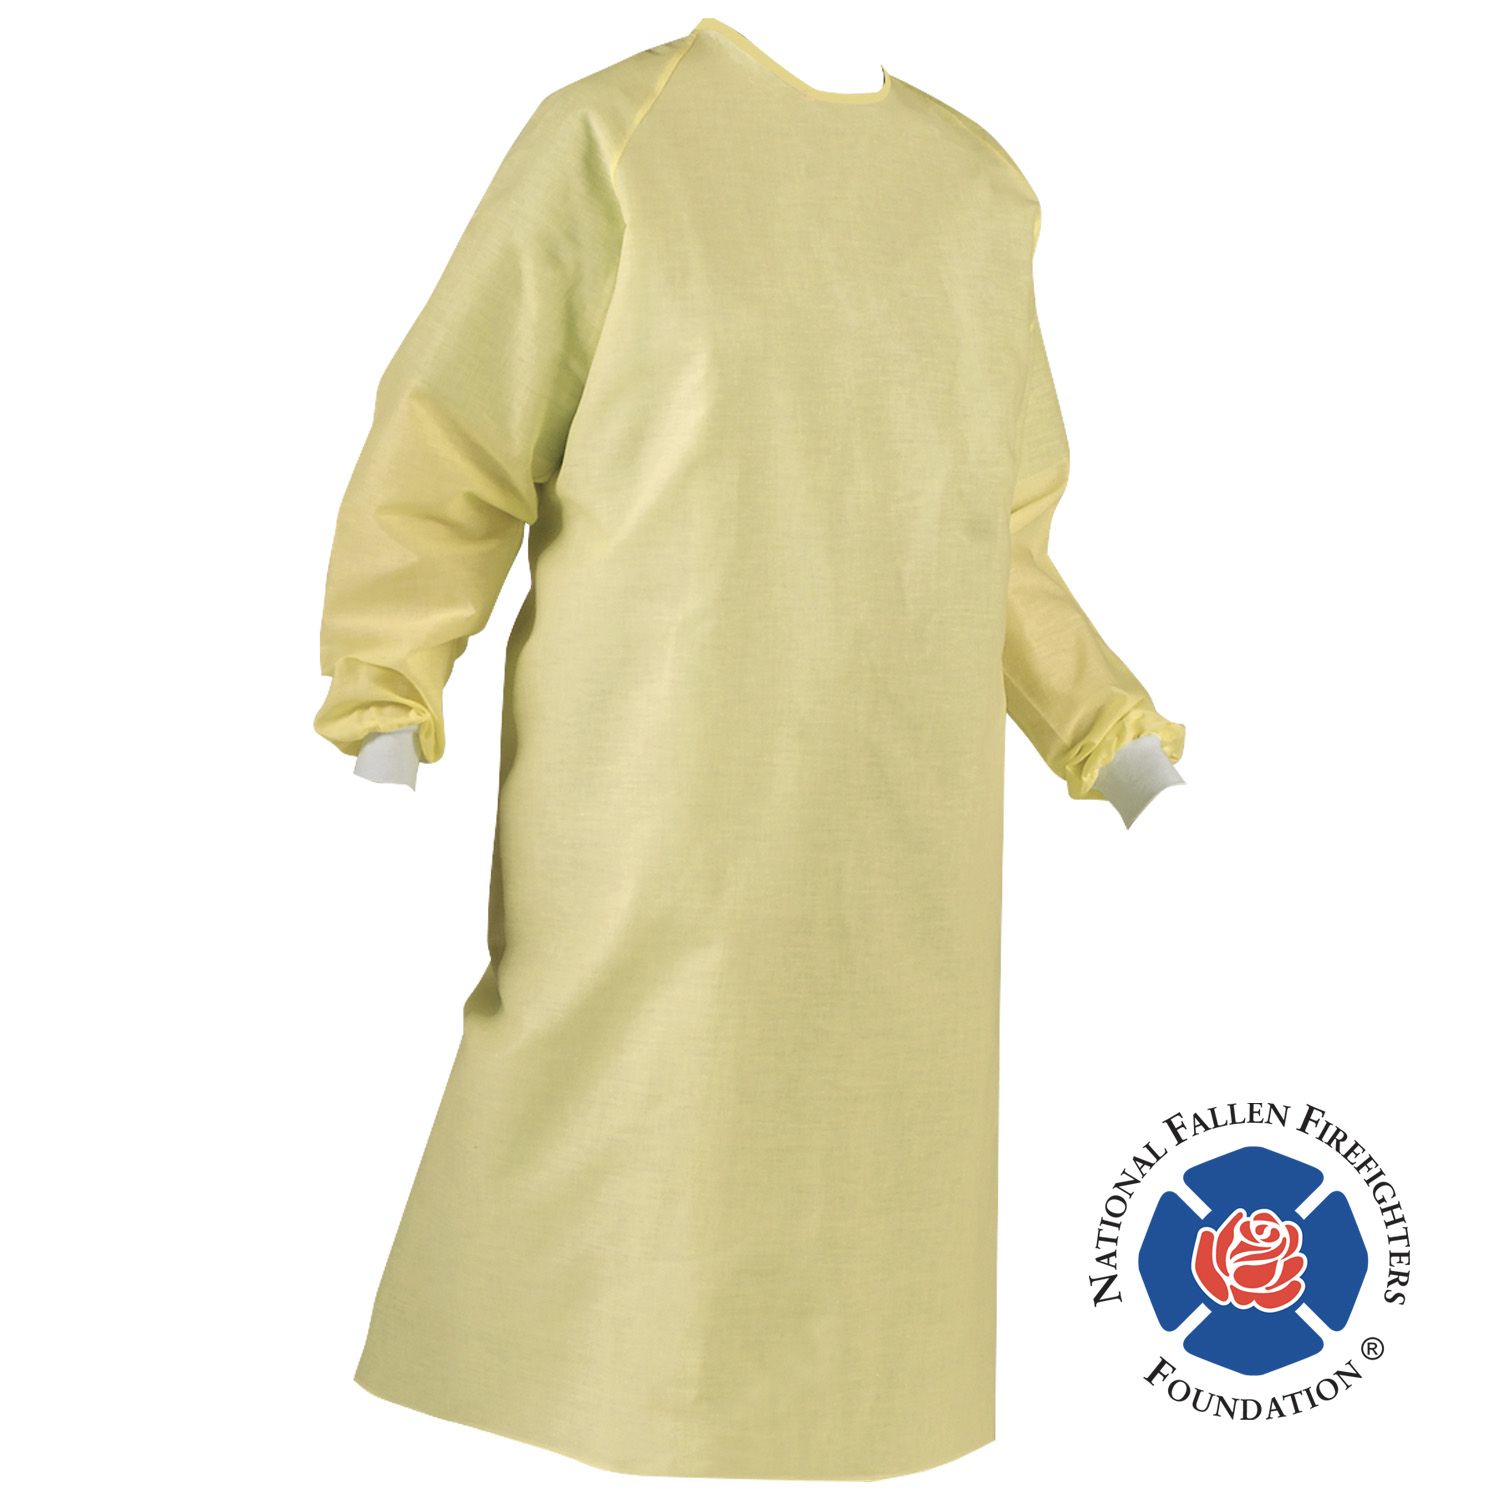 Ricochet Unisex Level 1 Gown supports NFFF